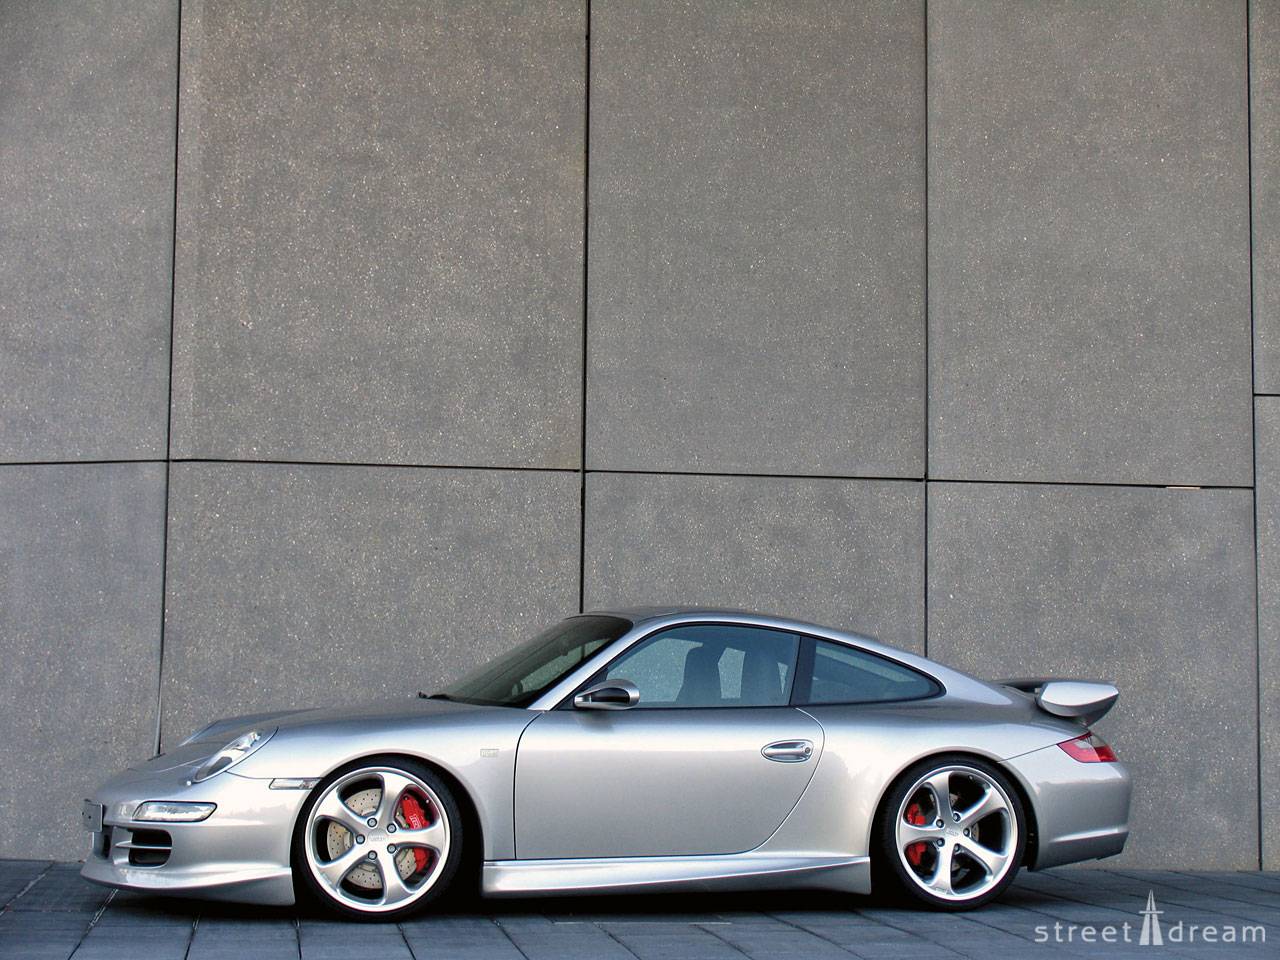 Techart Porsche 997 911 Carrera S photo 17724